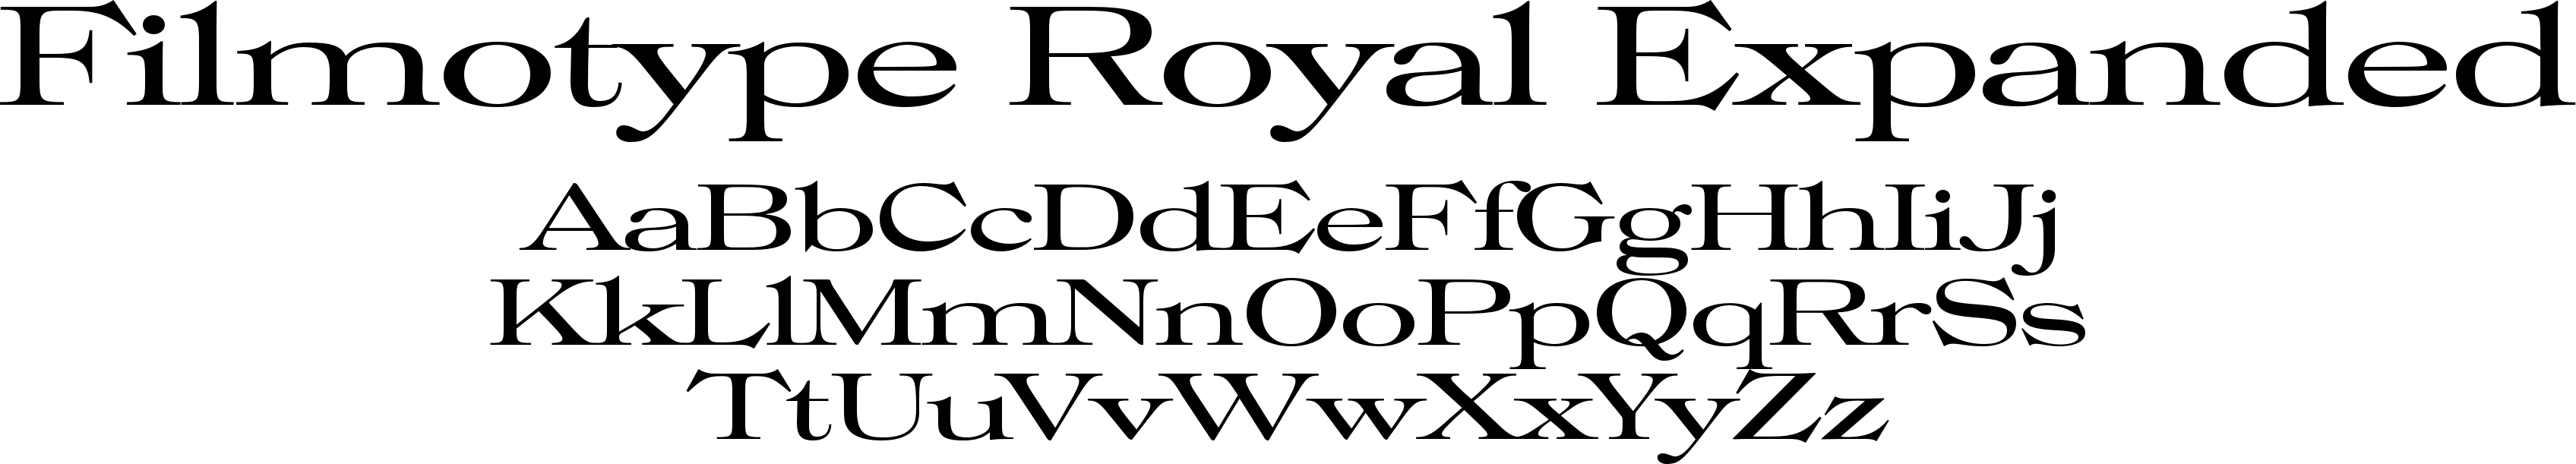 Filmotype Royal Expanded